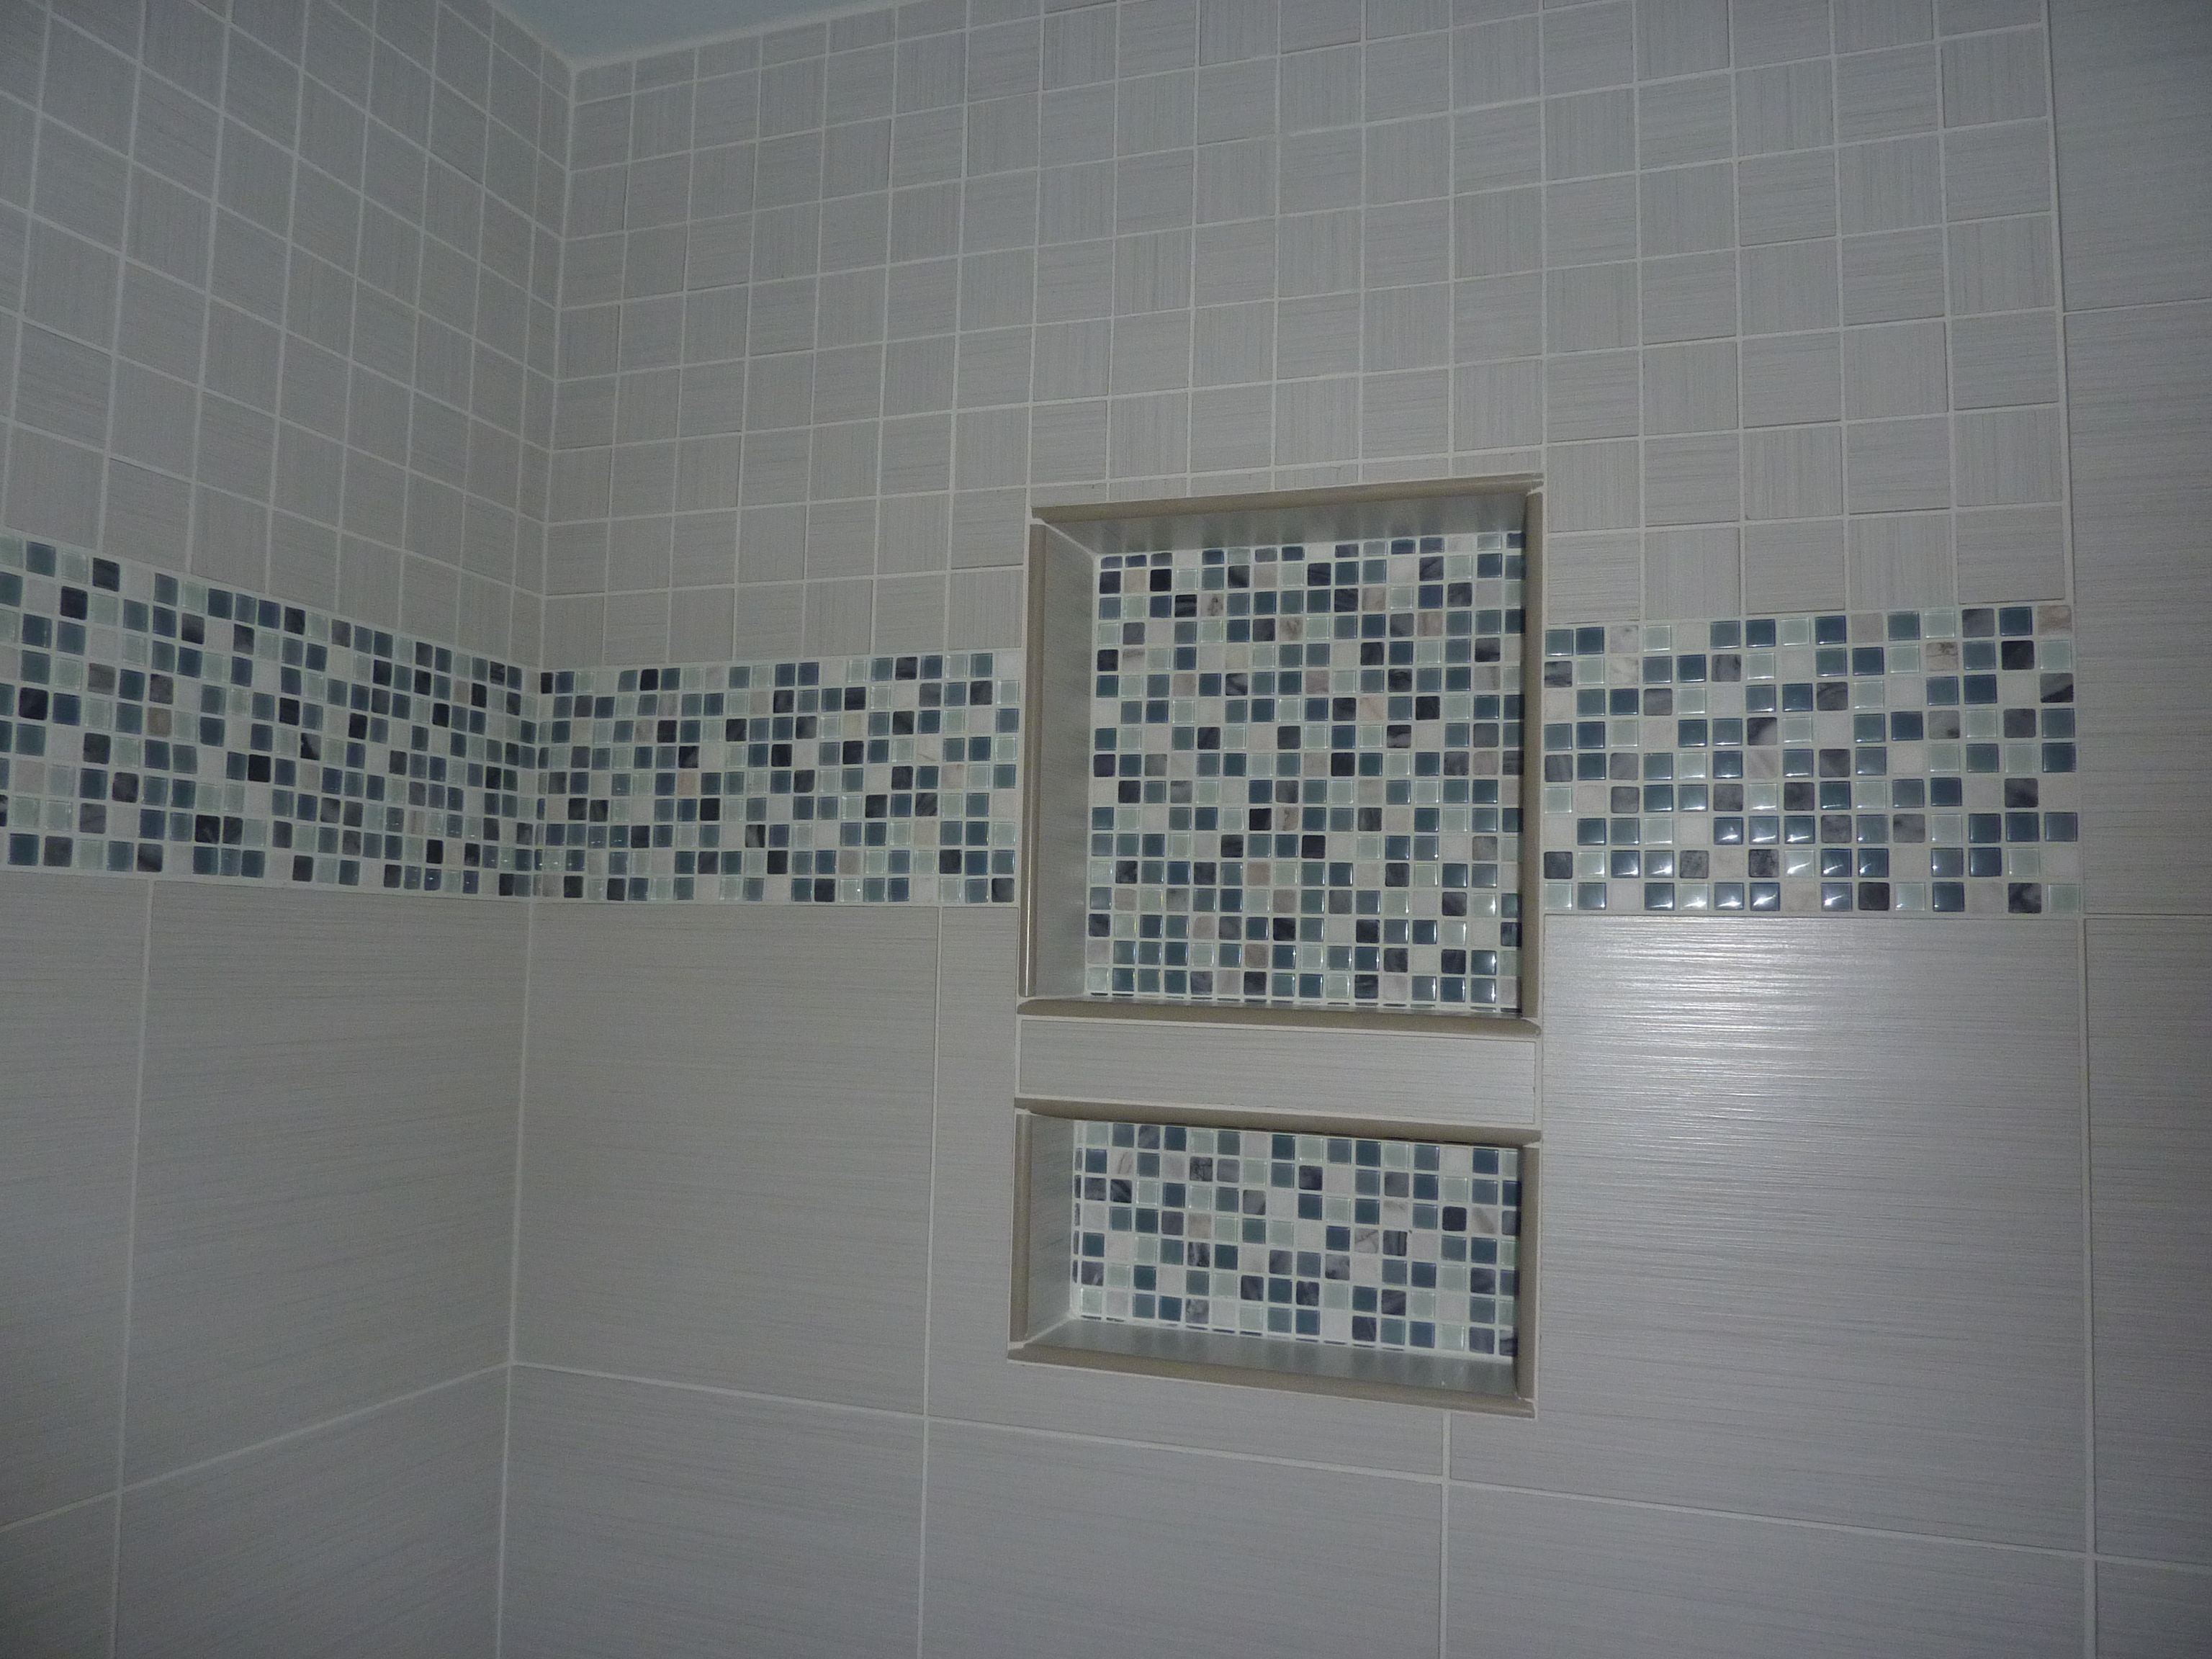 Contemporary Tiled Shower With Recessed Soap And Shampoo Shelf Tiles Above And Below The Glass